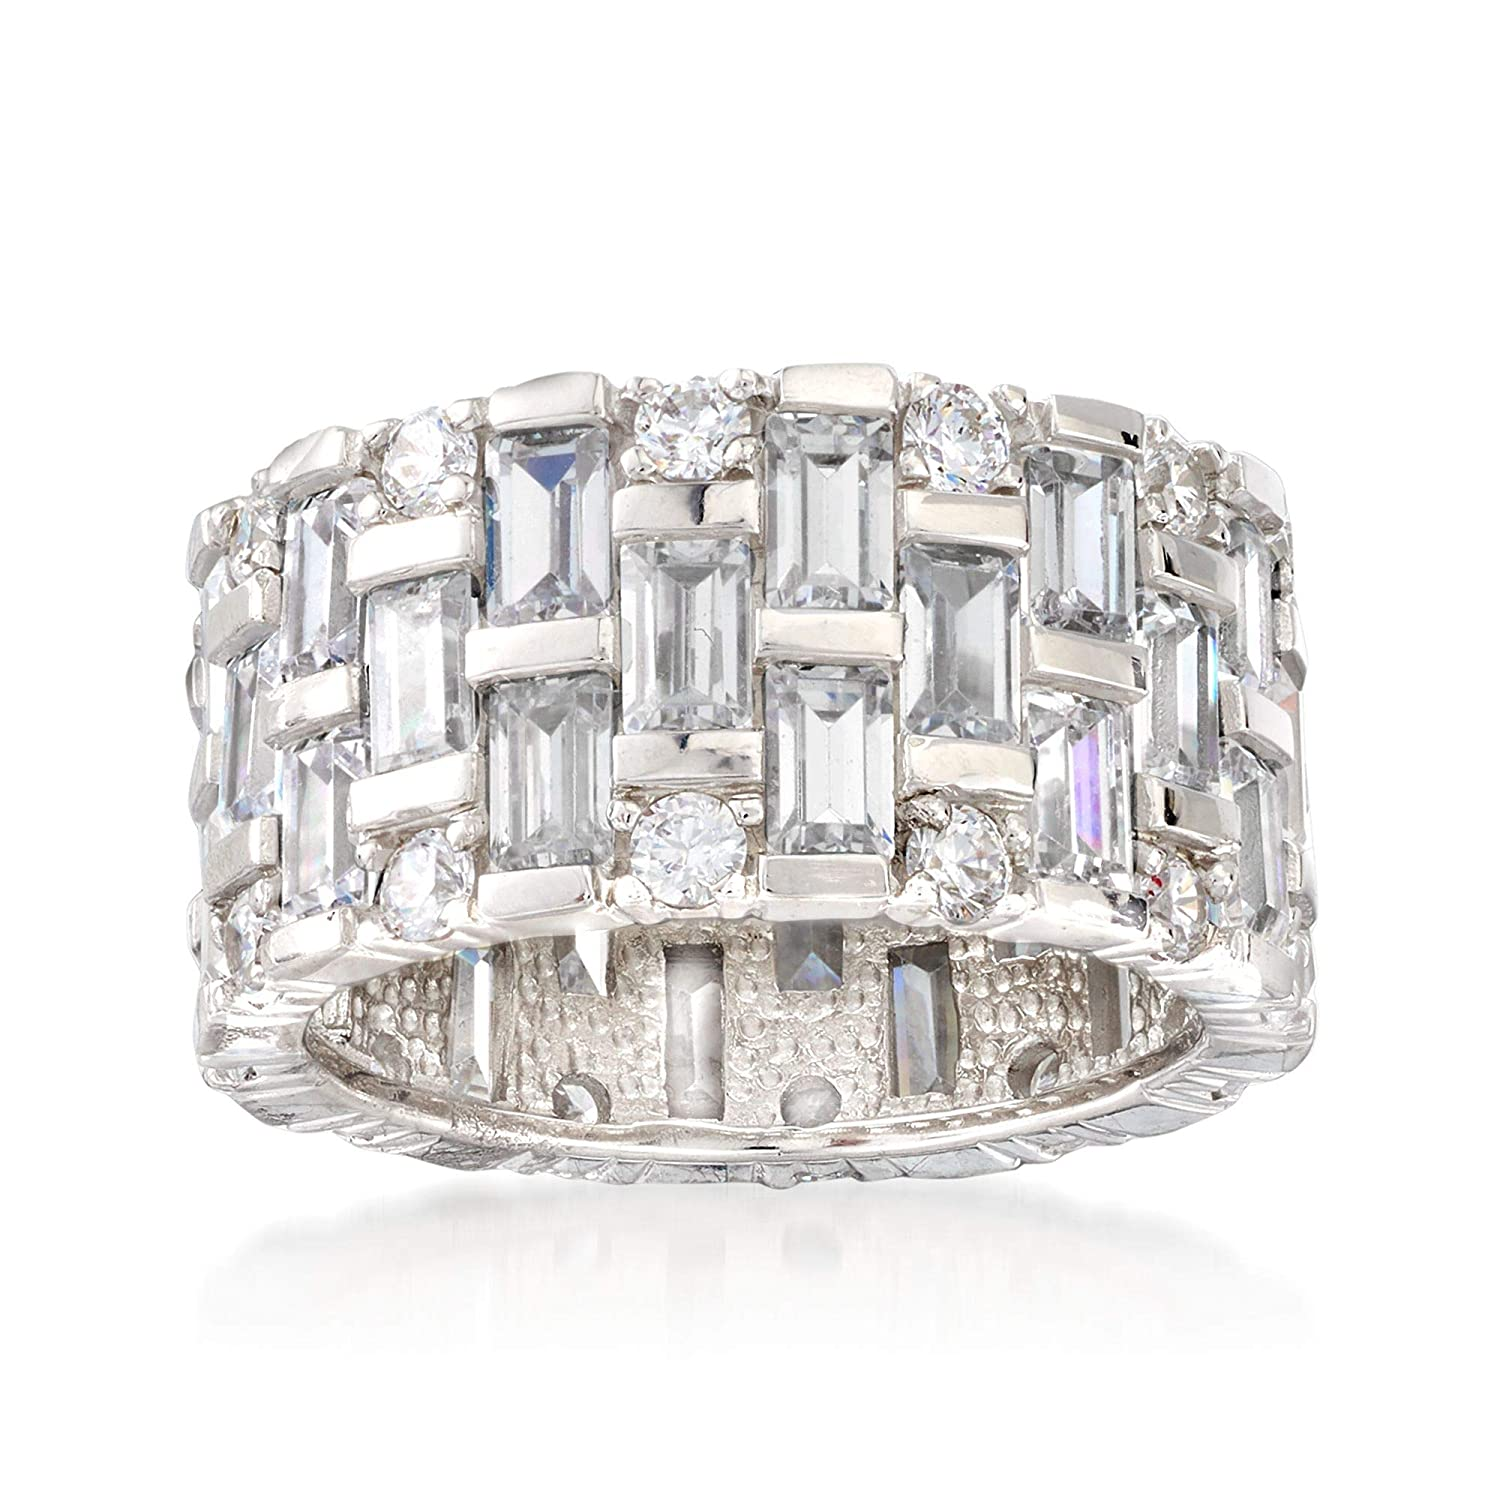 t.w Baguette and Round CZ Eternity Band in Sterling Silver Ross-Simons 5.50-6.50 ct